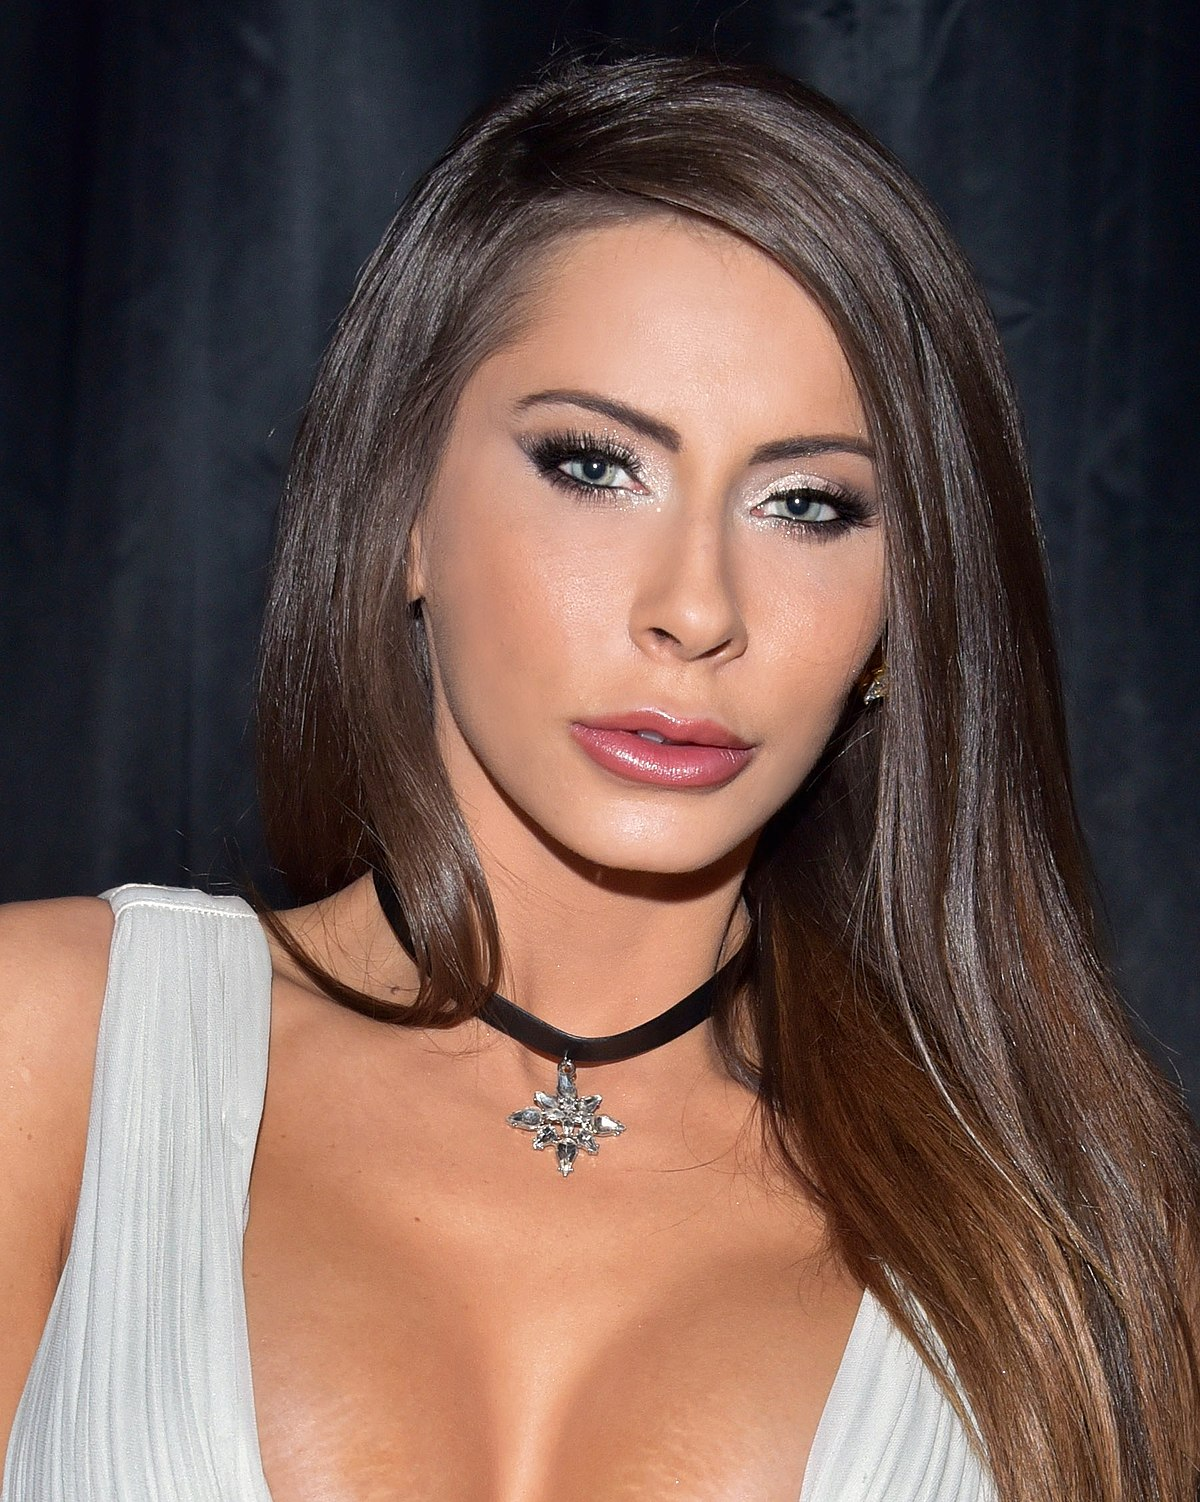 Madison Ivy German